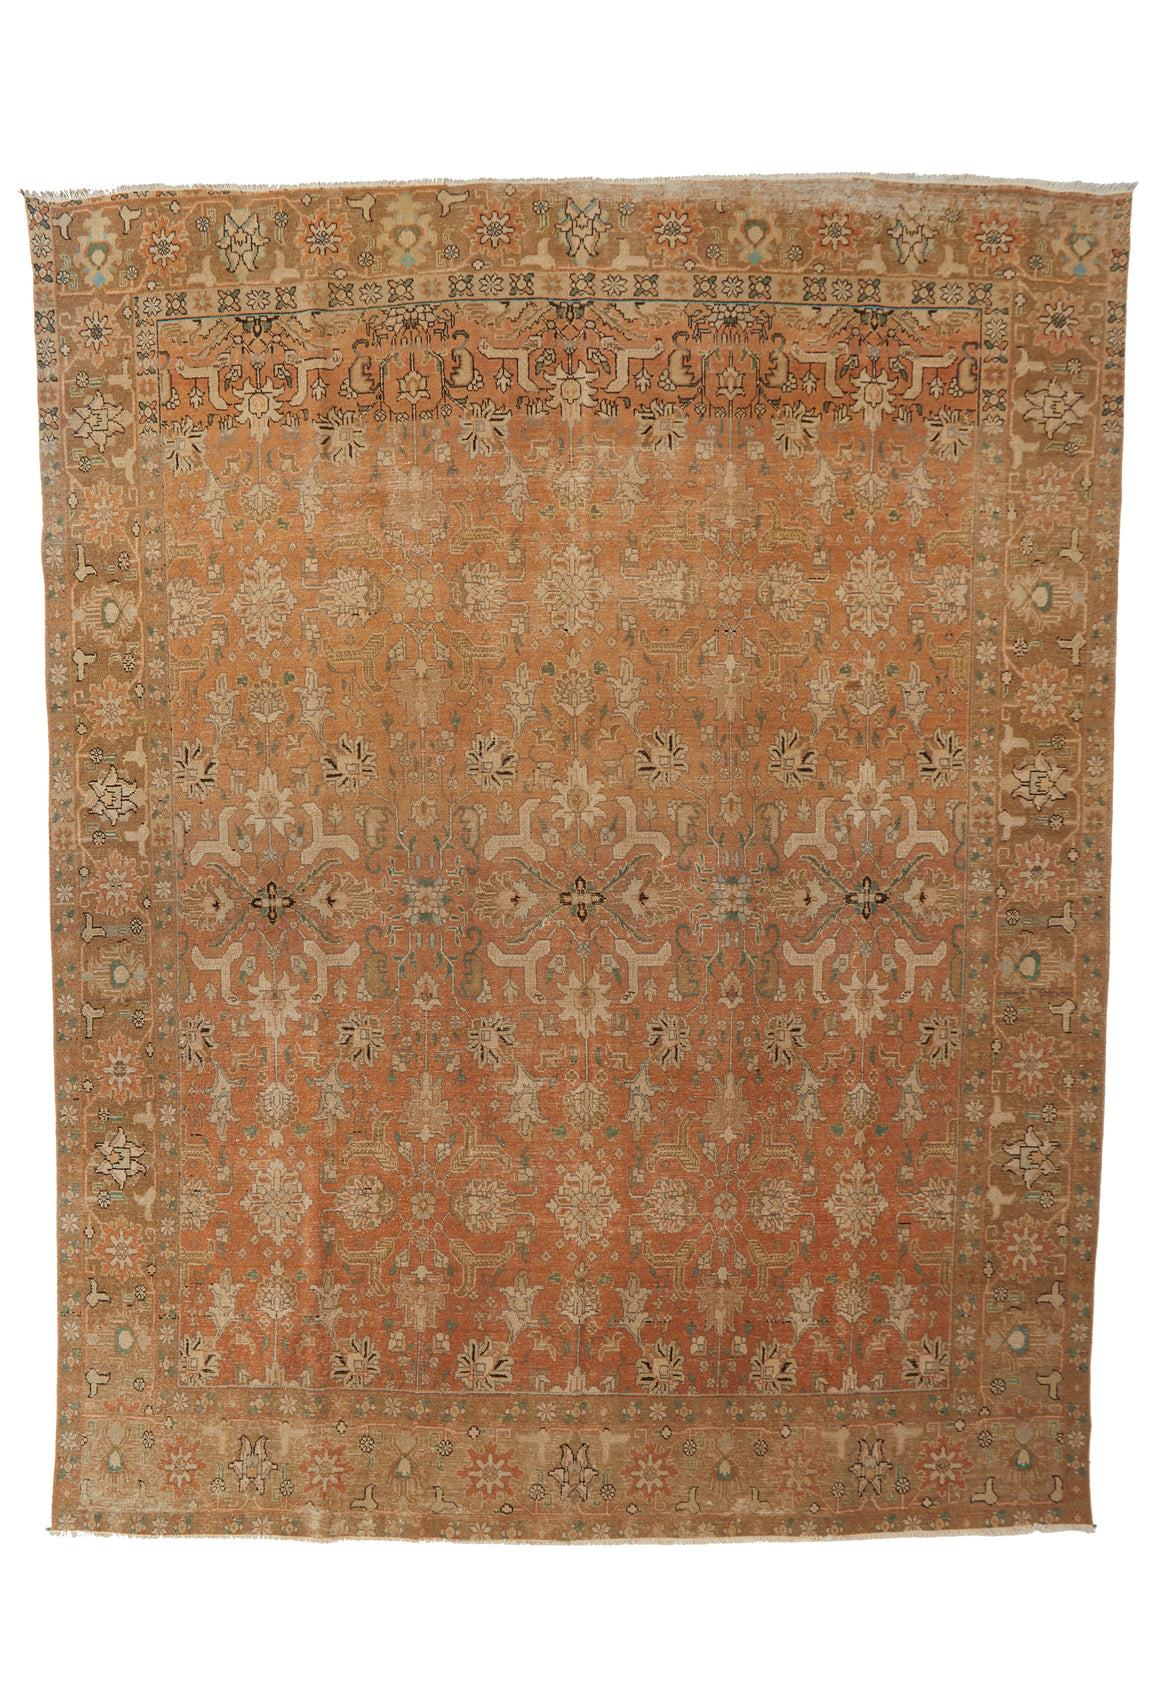 "'Daffodil' Turkish Vintage Area Rug - 9'8"" x 12'5"" - Canary Lane - Curated Textiles"